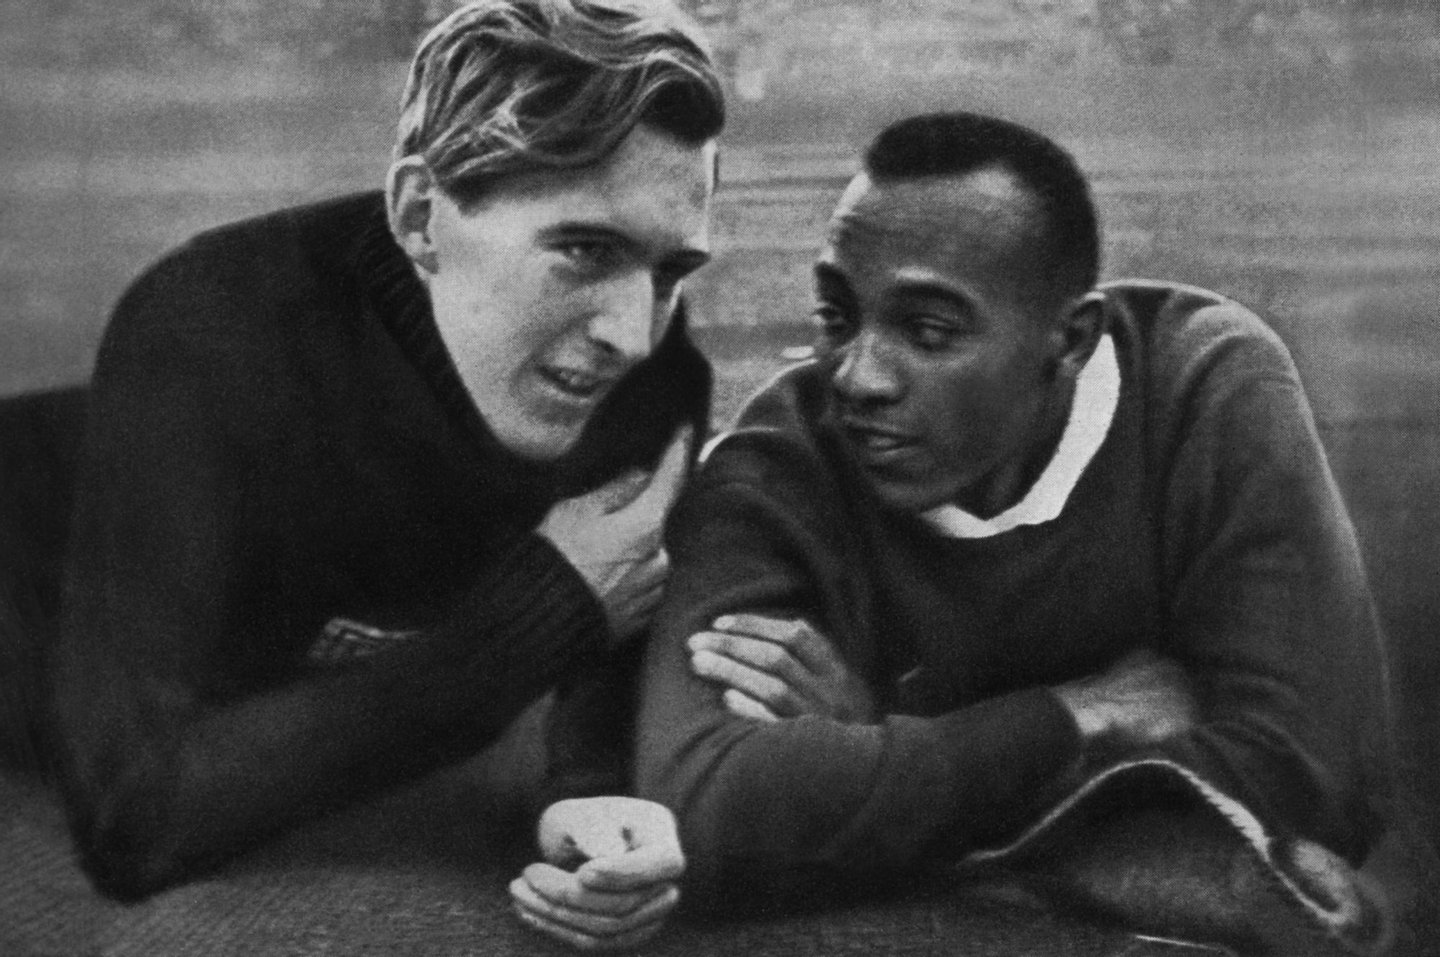 """US champion Jesse Owens (R) and German champion Luz Long (L) chat together on the Berlin stadium 01 August 1936 during the Olympic Games where Owens captured 4 gold medals, 100m, 200m, 4x100m and long jump. Luz, second of Owens, captured the long jump silver. Grandson of a slave and legendary athlete, """"Jesse"""" Owens established 6 world records in 1935. """"Jesse"""" Owens retained his 100m world record for 20 years and his long jump world record for 25 years (until 1960). (Photo credit should read CORR/AFP/Getty Images)"""